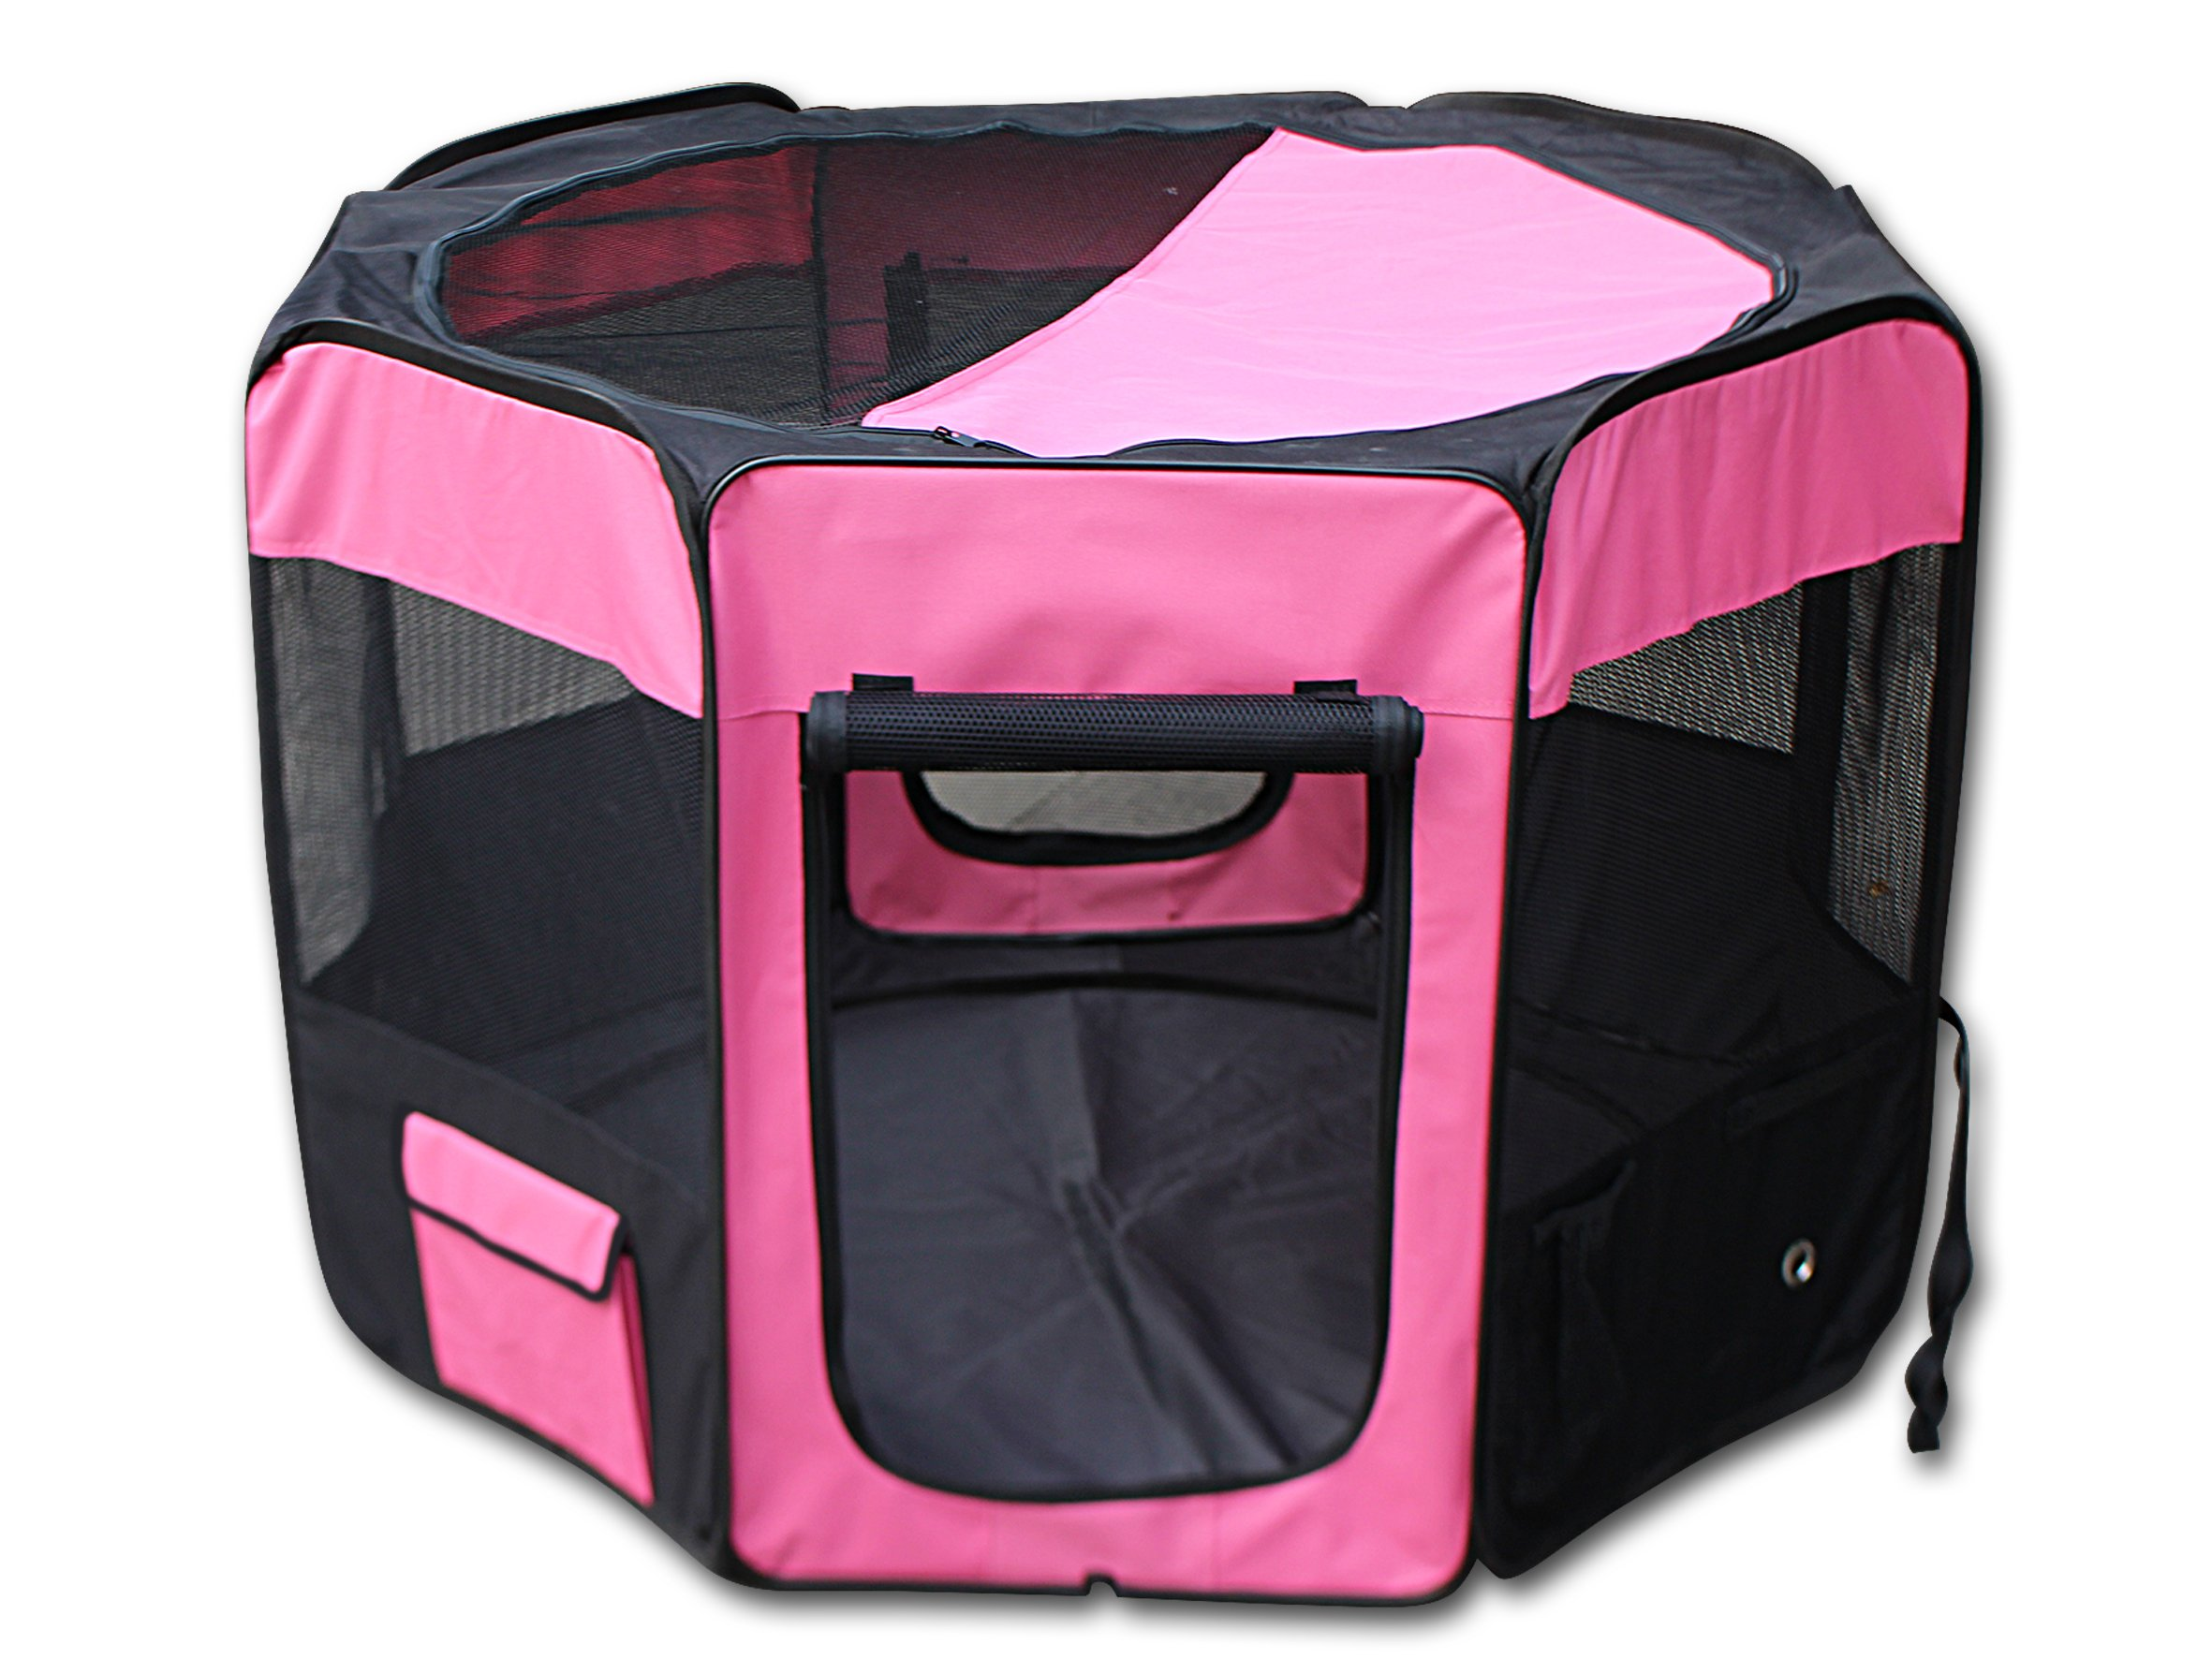 YoYo Moon 46'' D X 30'' H Pet Puppy Dog Playpen Exercise Puppy Pen Kennel 600d Oxford Cloth, Pink/Black